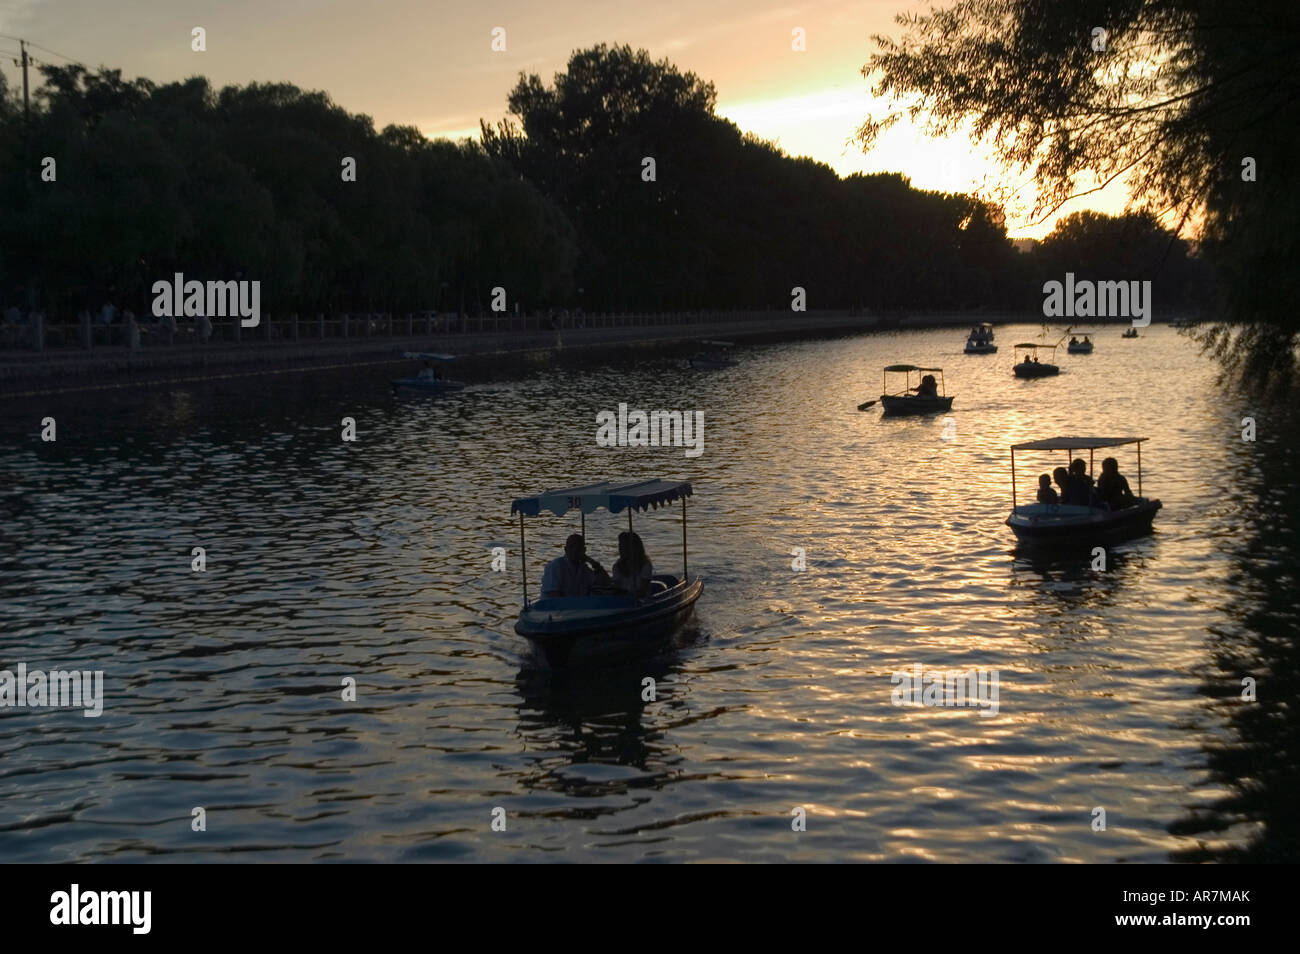 Boating on Shichahai lake behind Houhai in Beijing on a summer evening. Stock Photo